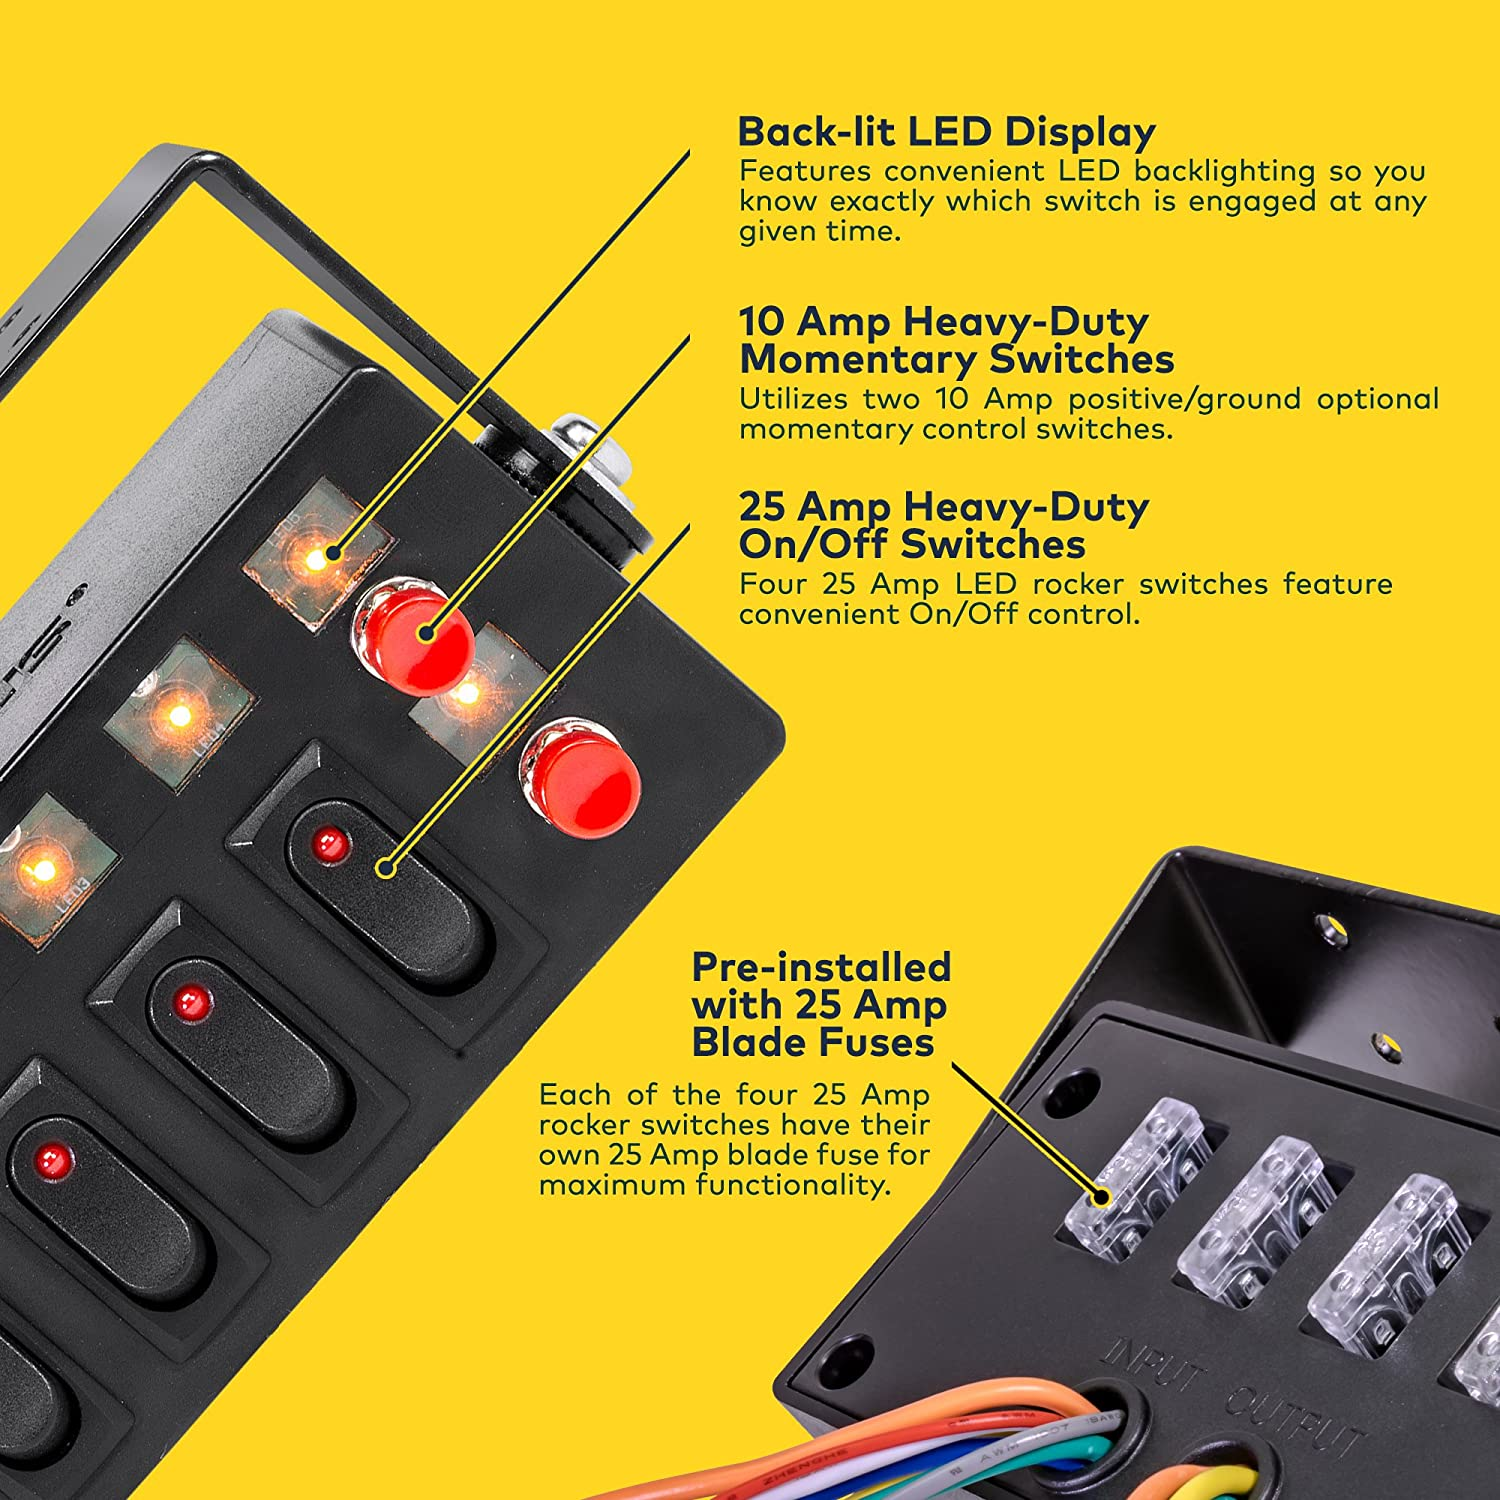 Lamphus Swbx42 Led Backlit Switch Box 4x 25a On Off Wiring Diagram Mini Rocker Switches 2x Momentary Adjustable Swivel Bracket Perfect For Police